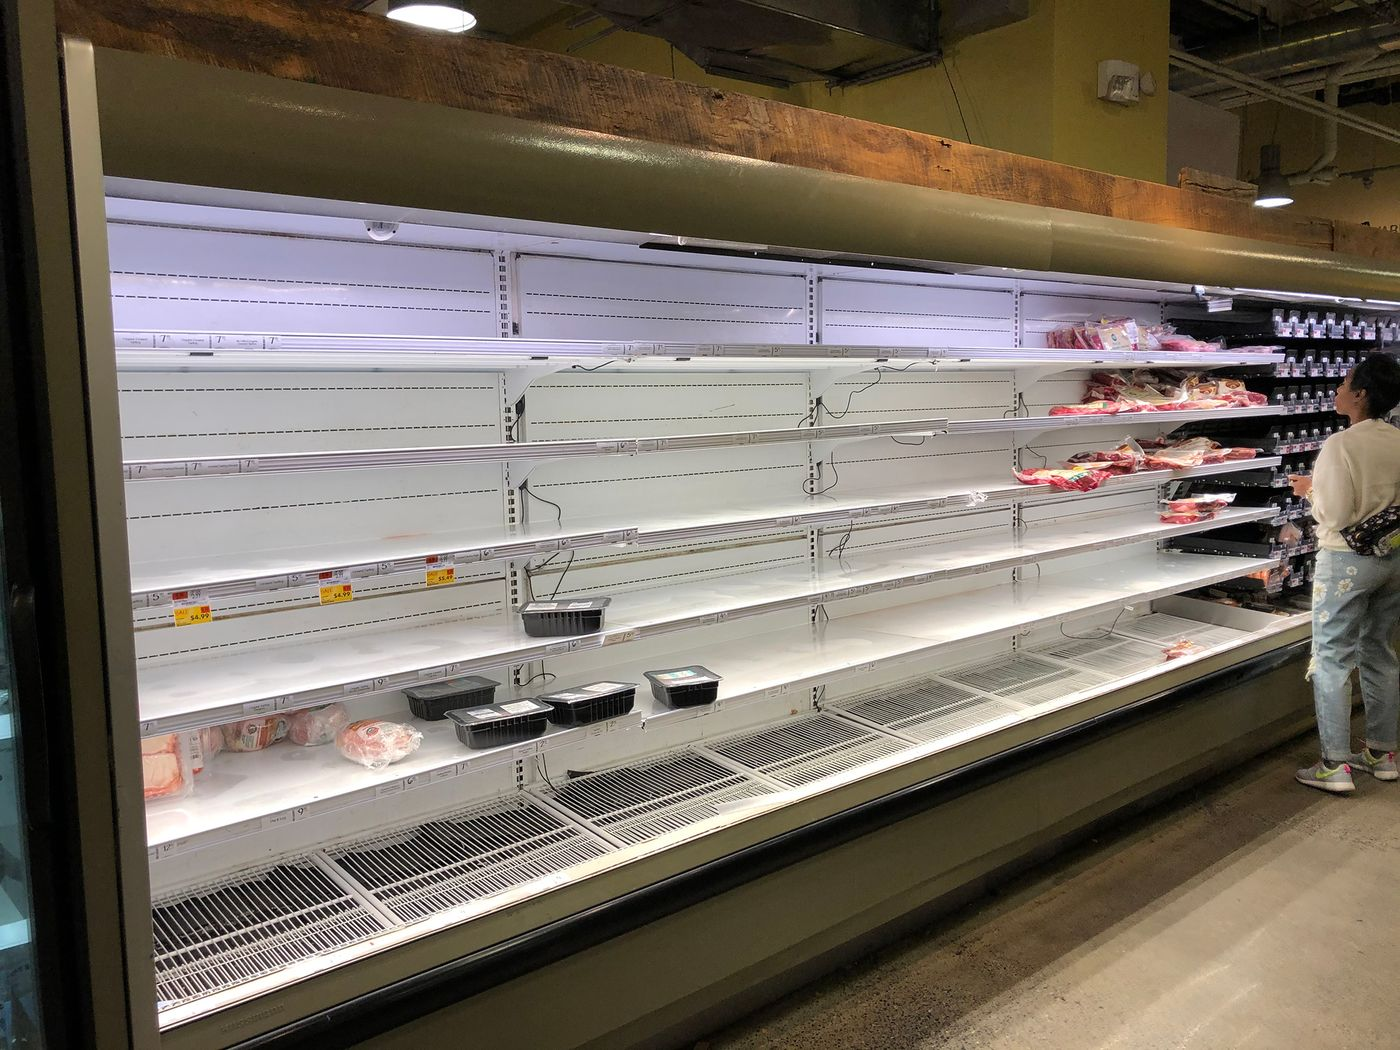 relates to Americans Empty Nation's Grocery Shelves to Hunker Down at Home